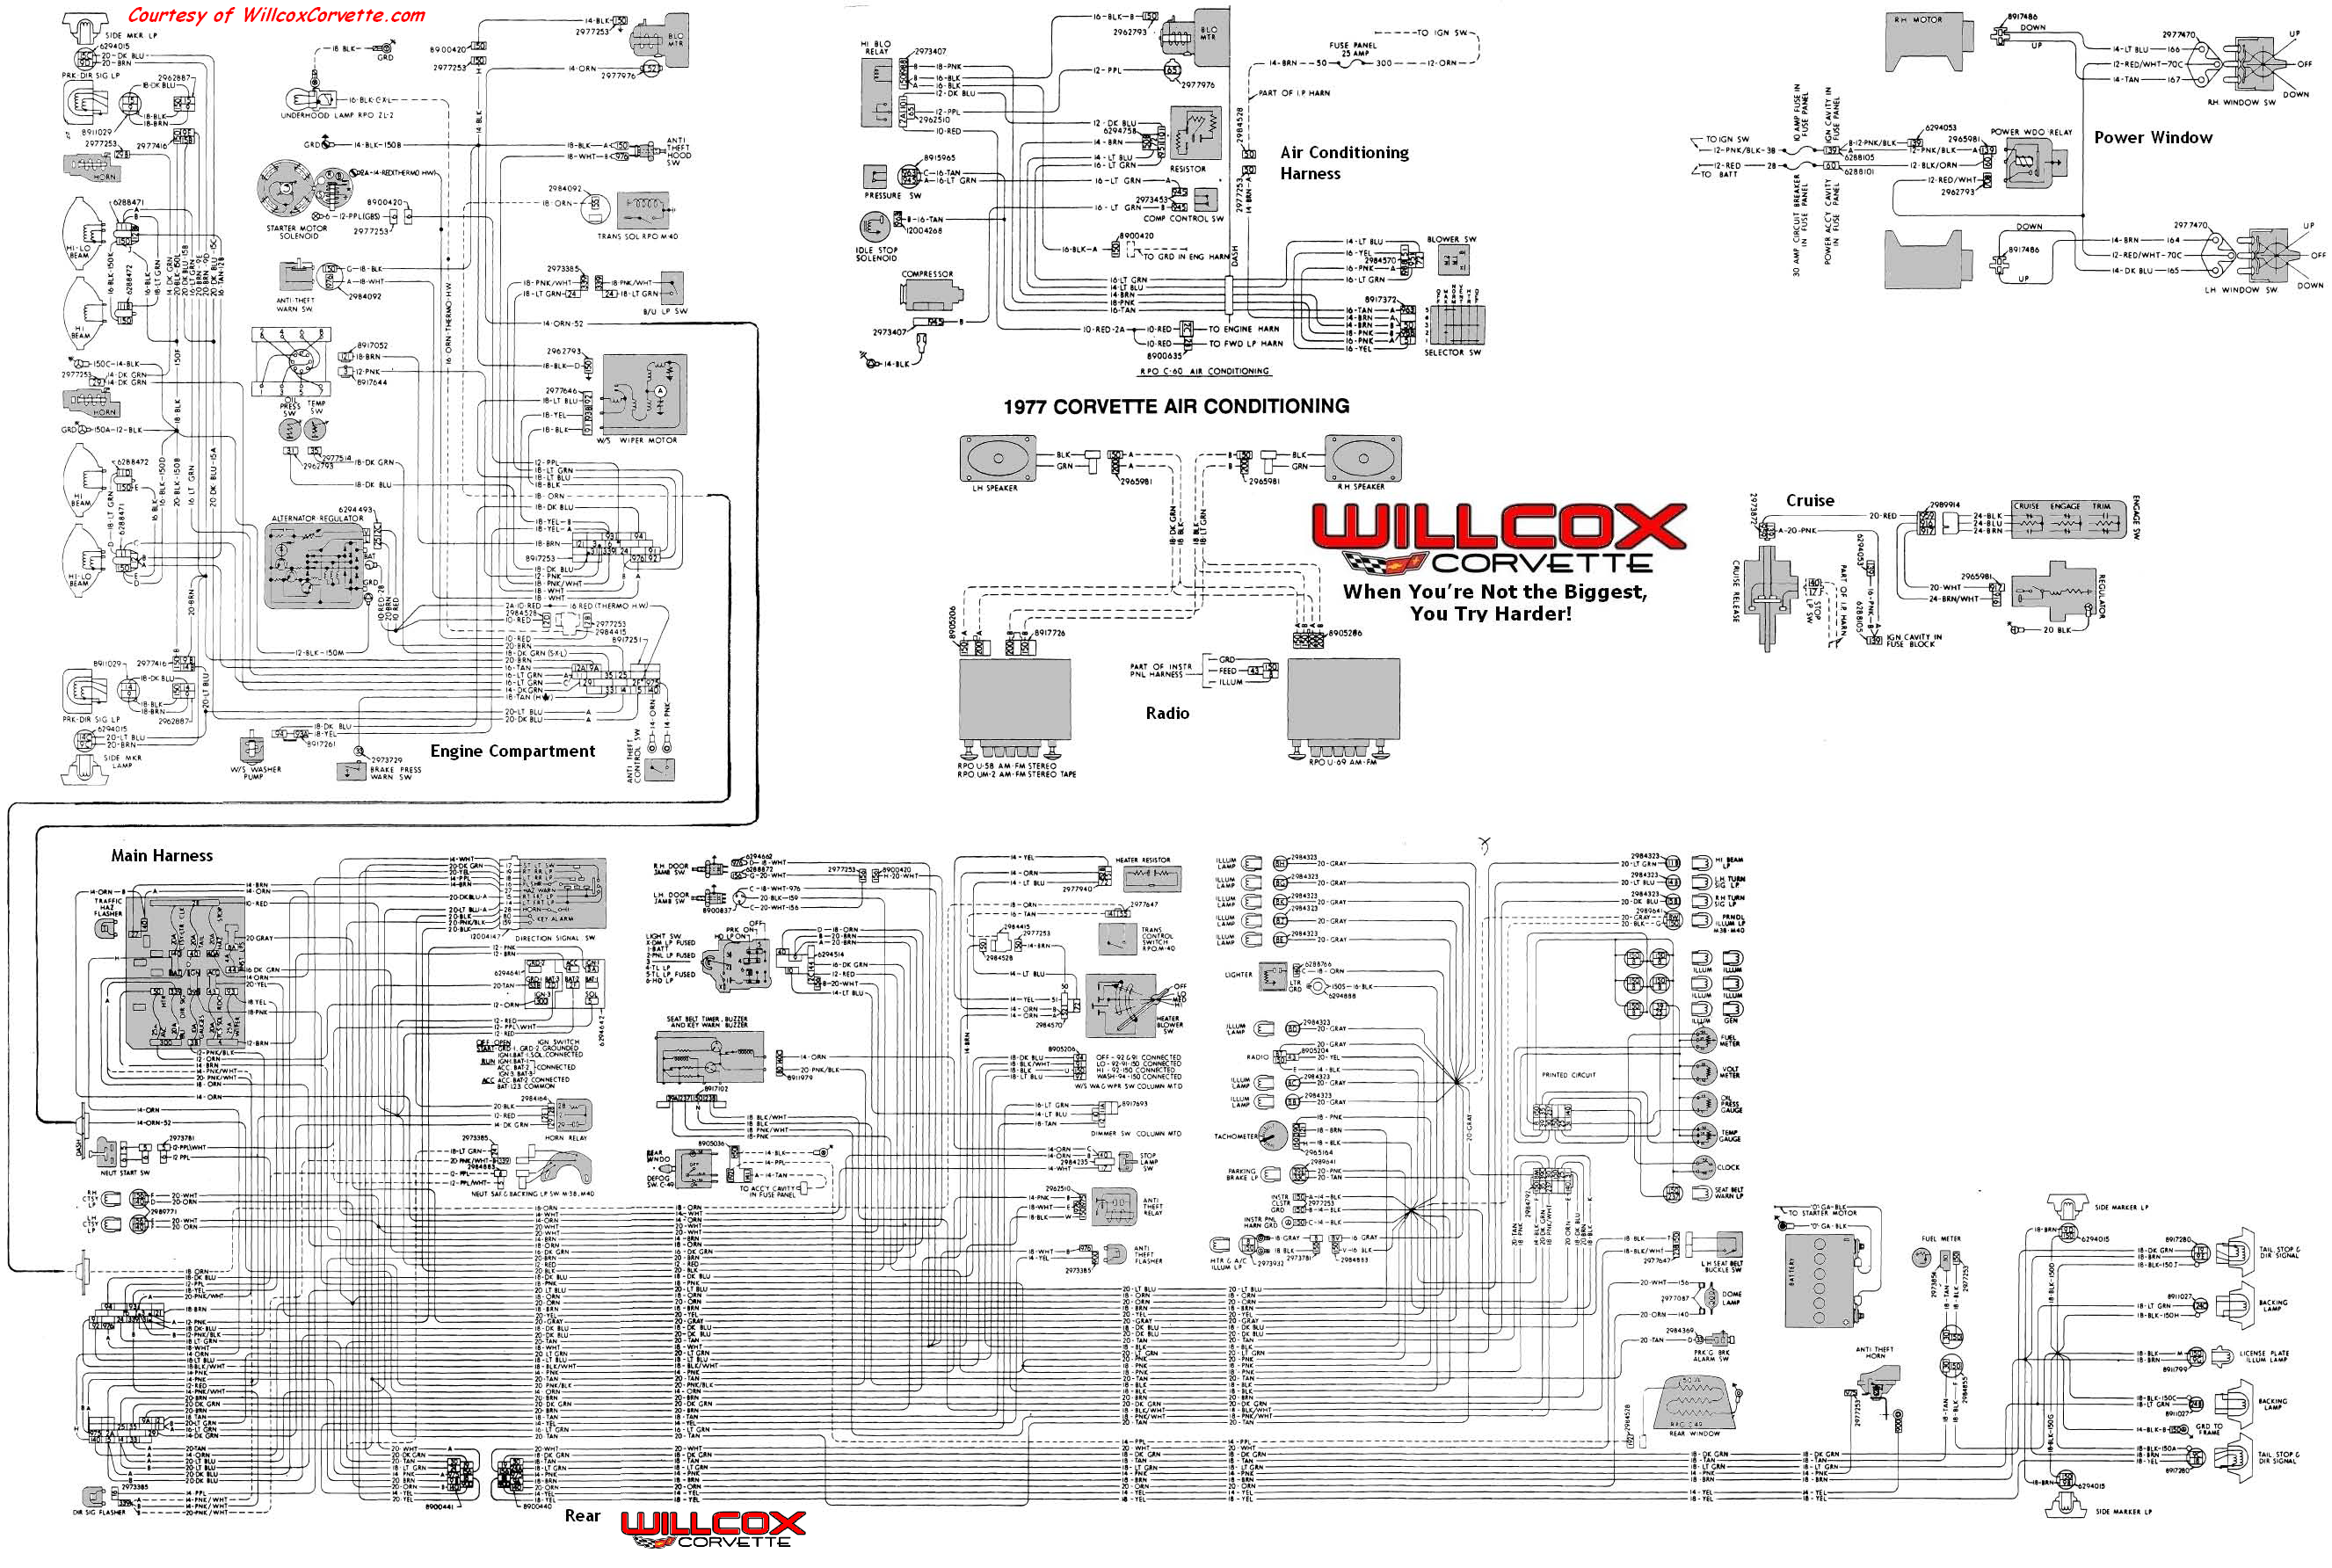 c3 corvette wiring wiring diagram will be a thing u2022 rh exploreandmore  co uk c3 corvette fuse box diagram c3 corvette fuse box diagram